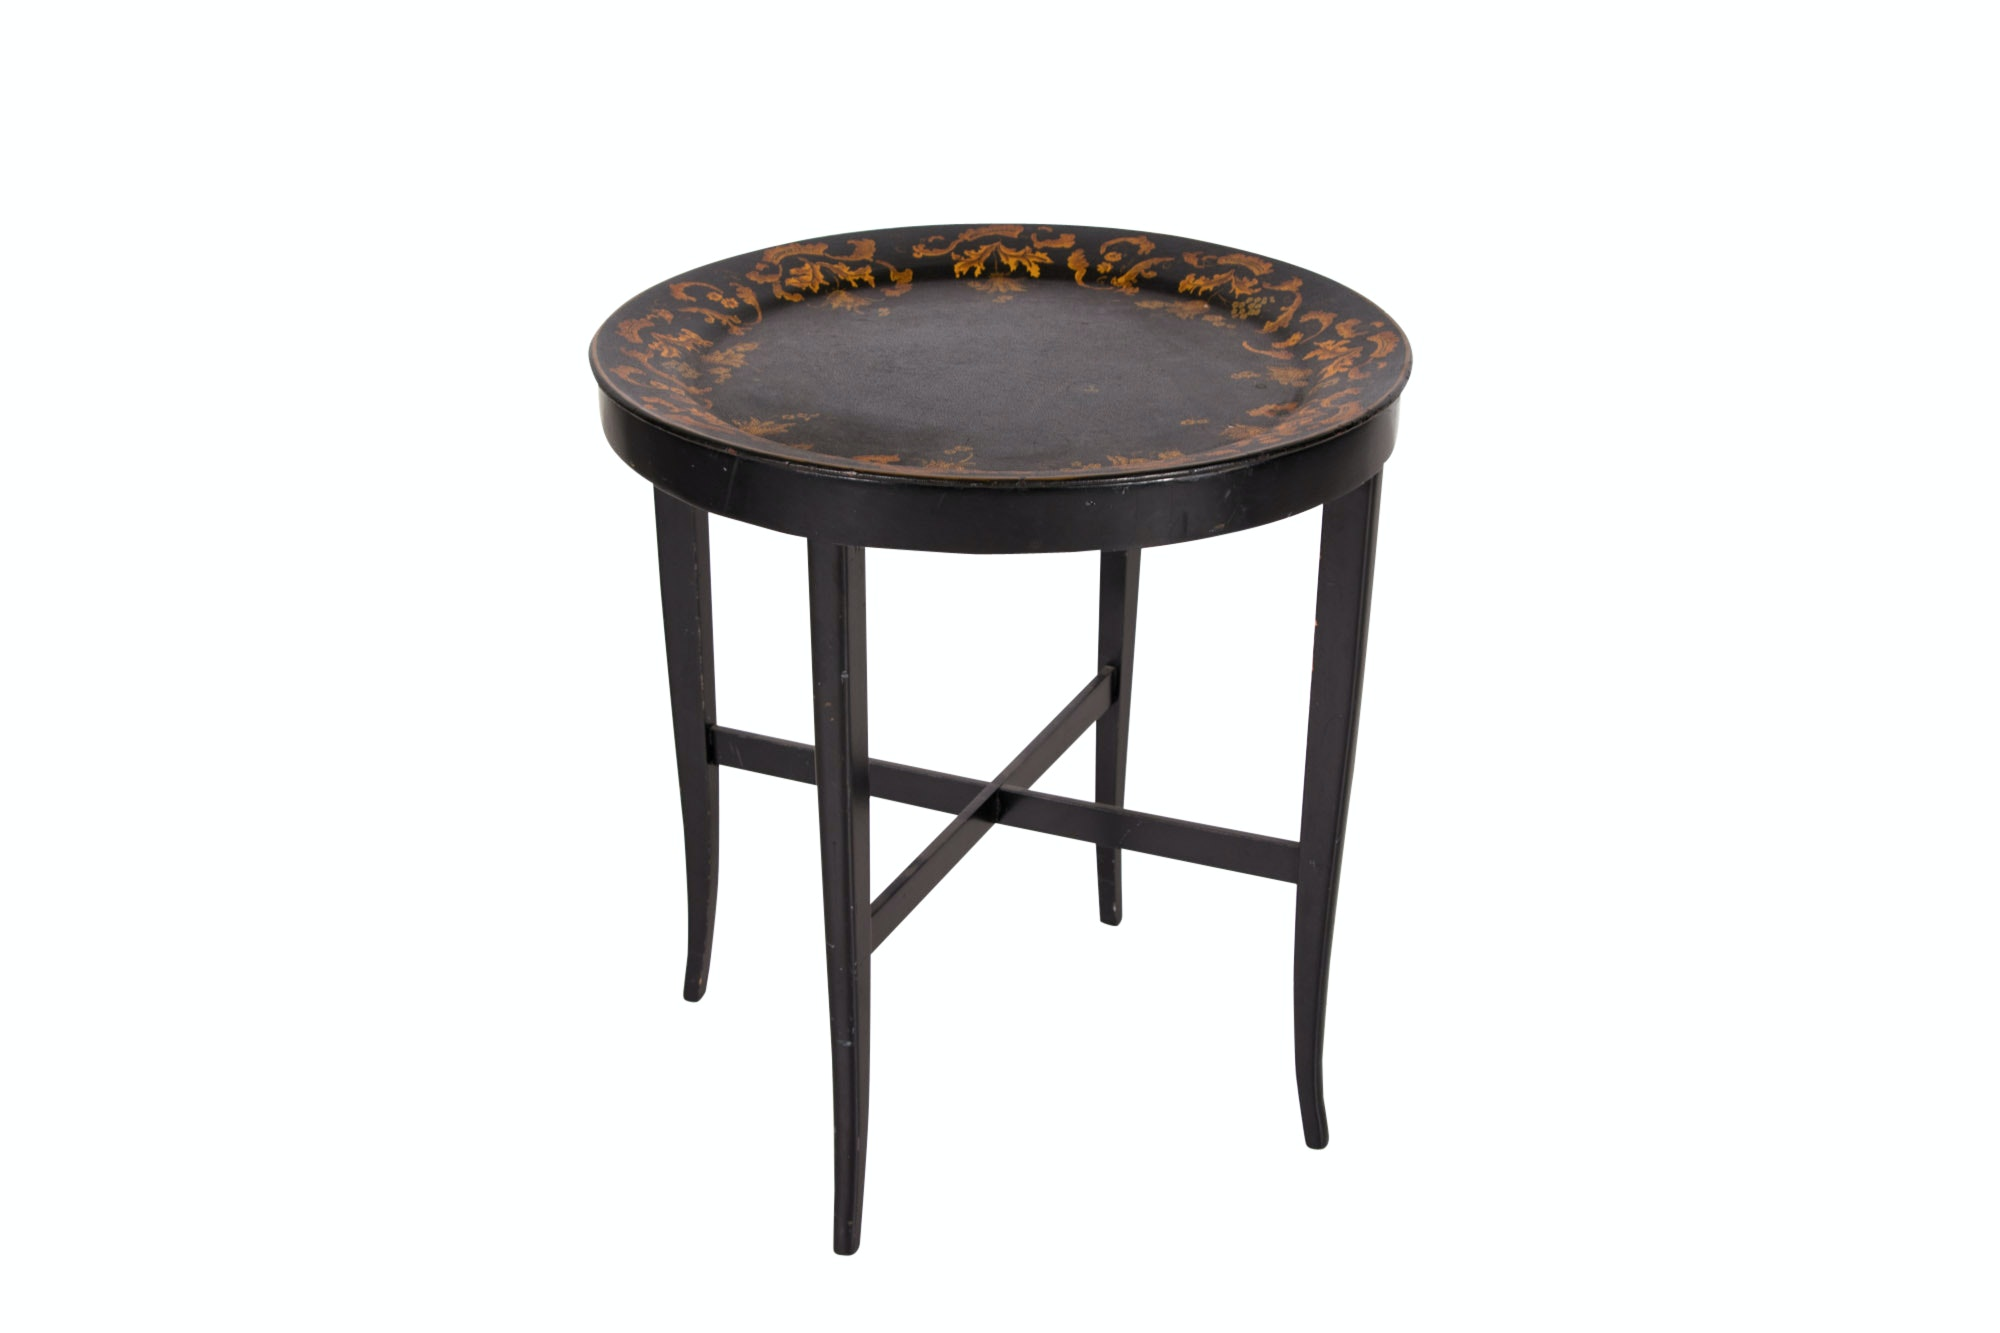 Victorian Style Black Lacquer and Parcel-Gilt Tray-on-Stand, 20th Century